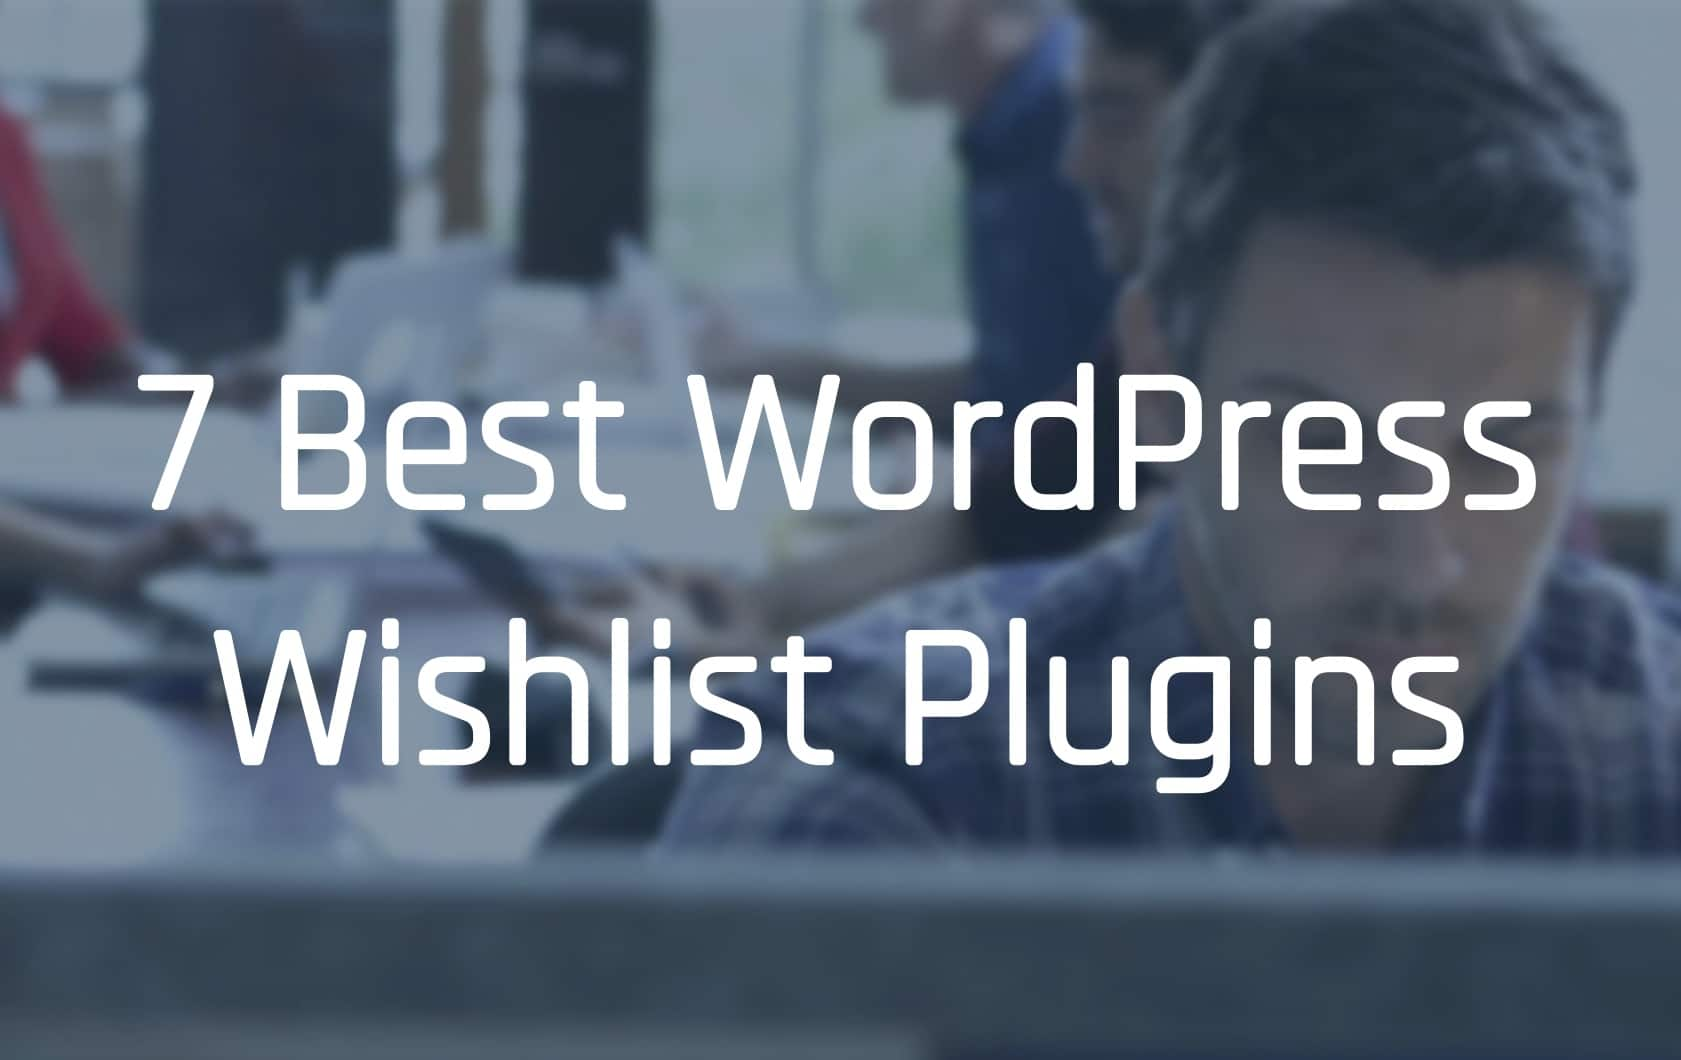 Wishlist Plugins